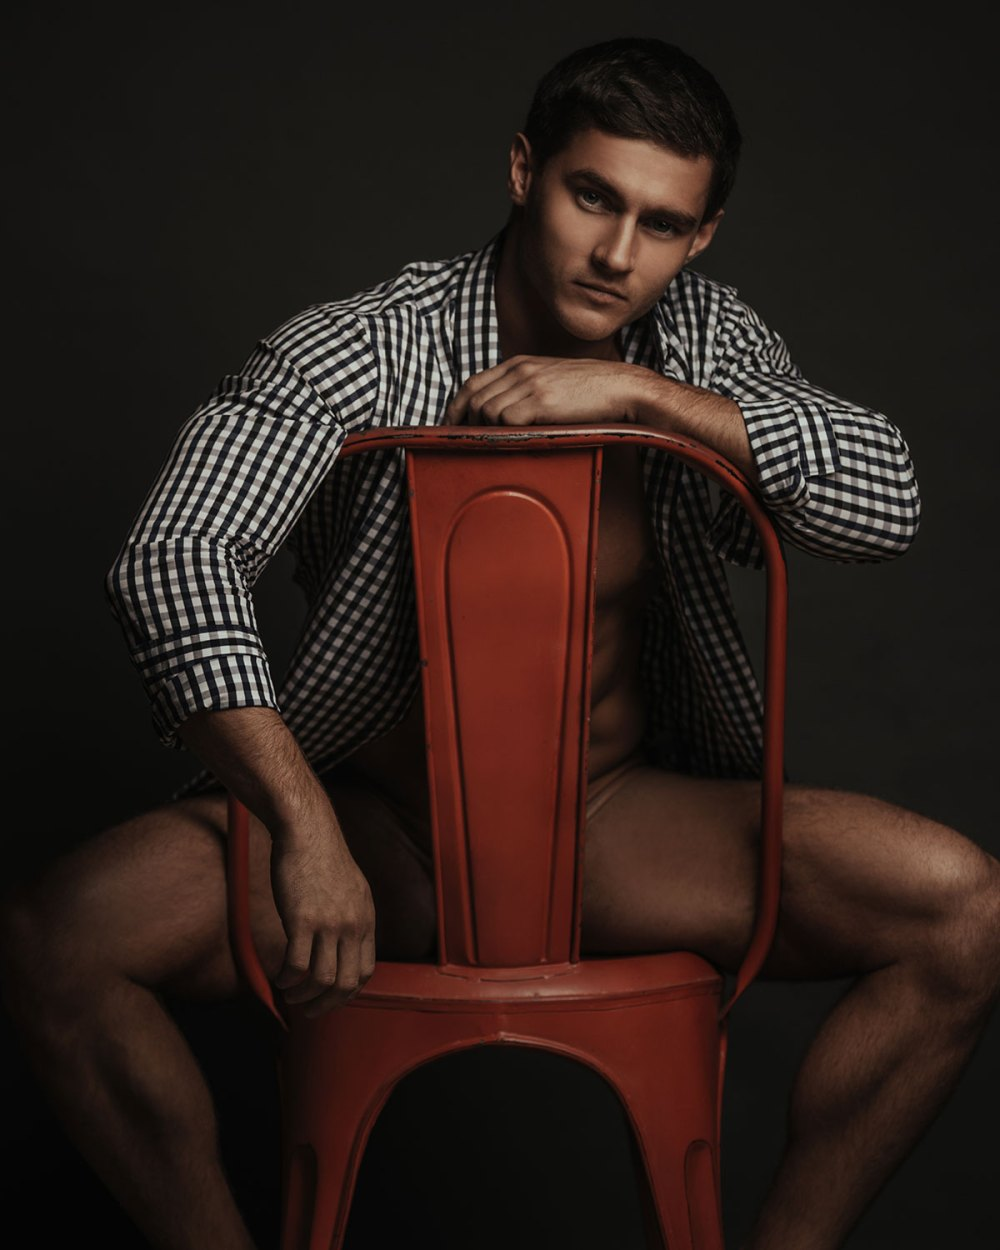 anatoly-goncharov-by-serge-lee-6